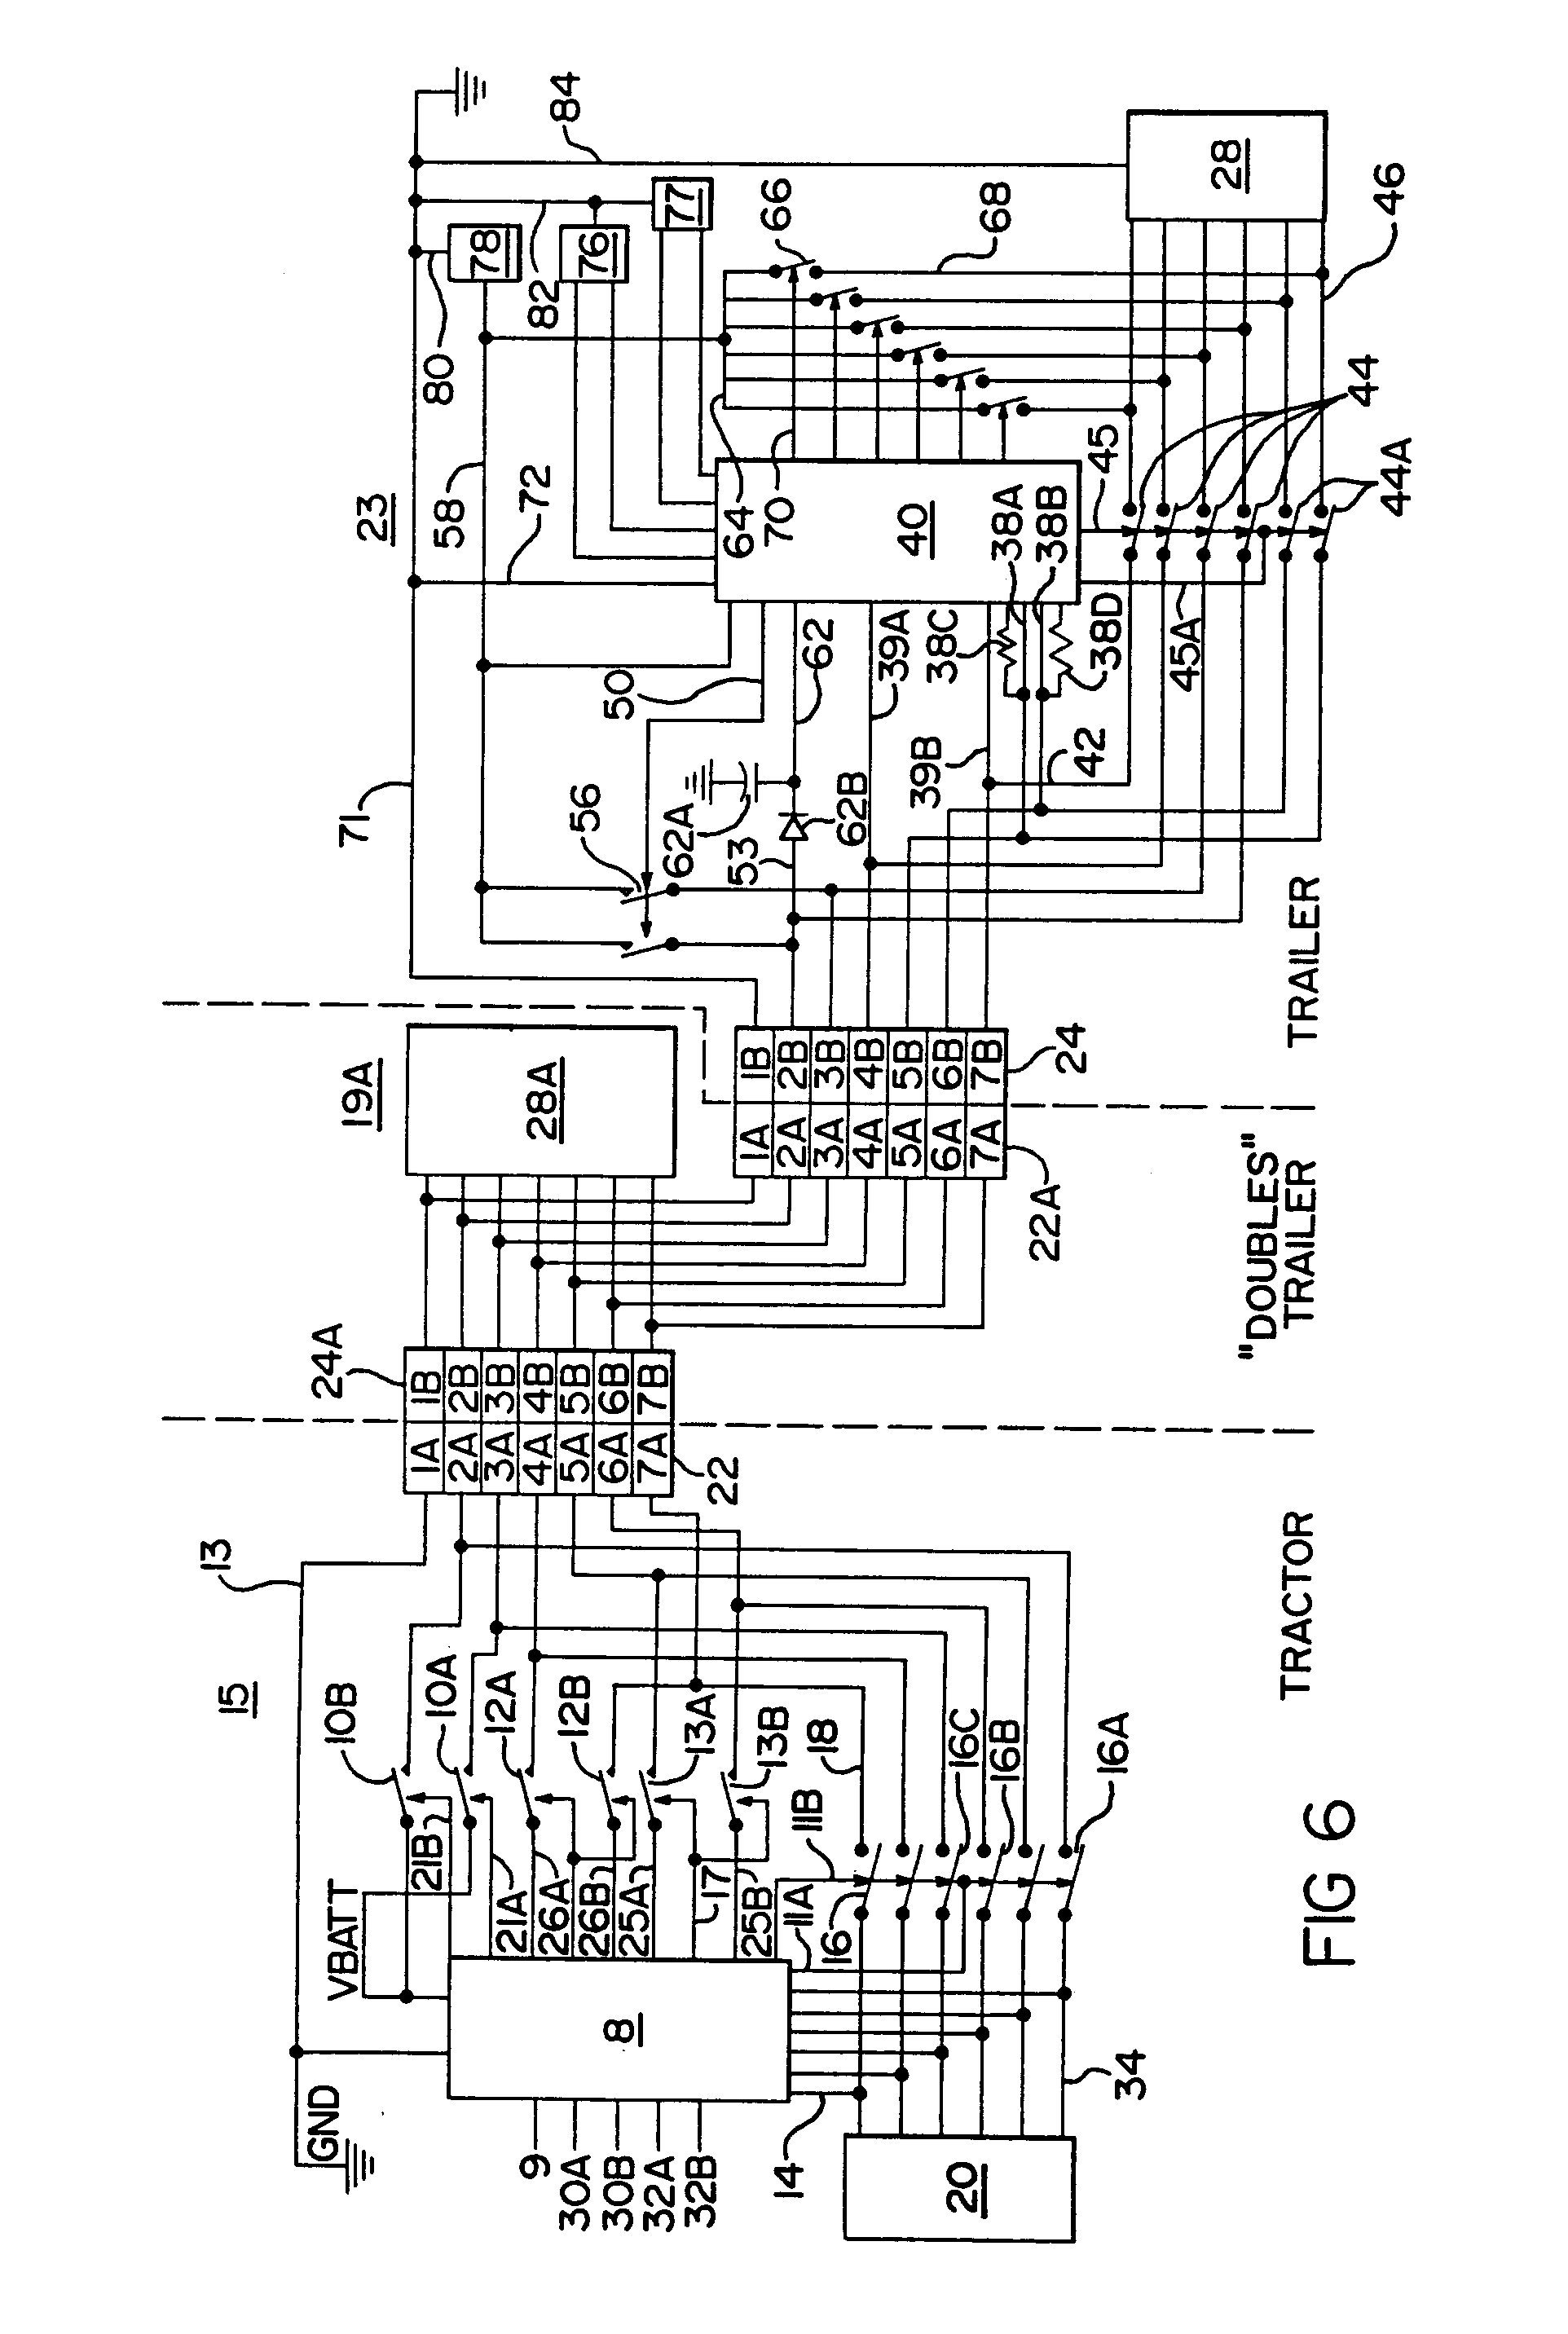 imgf0004 patent ep0546370a1 truck tractor and trailer electrical bendix trailer abs wiring diagram at eliteediting.co